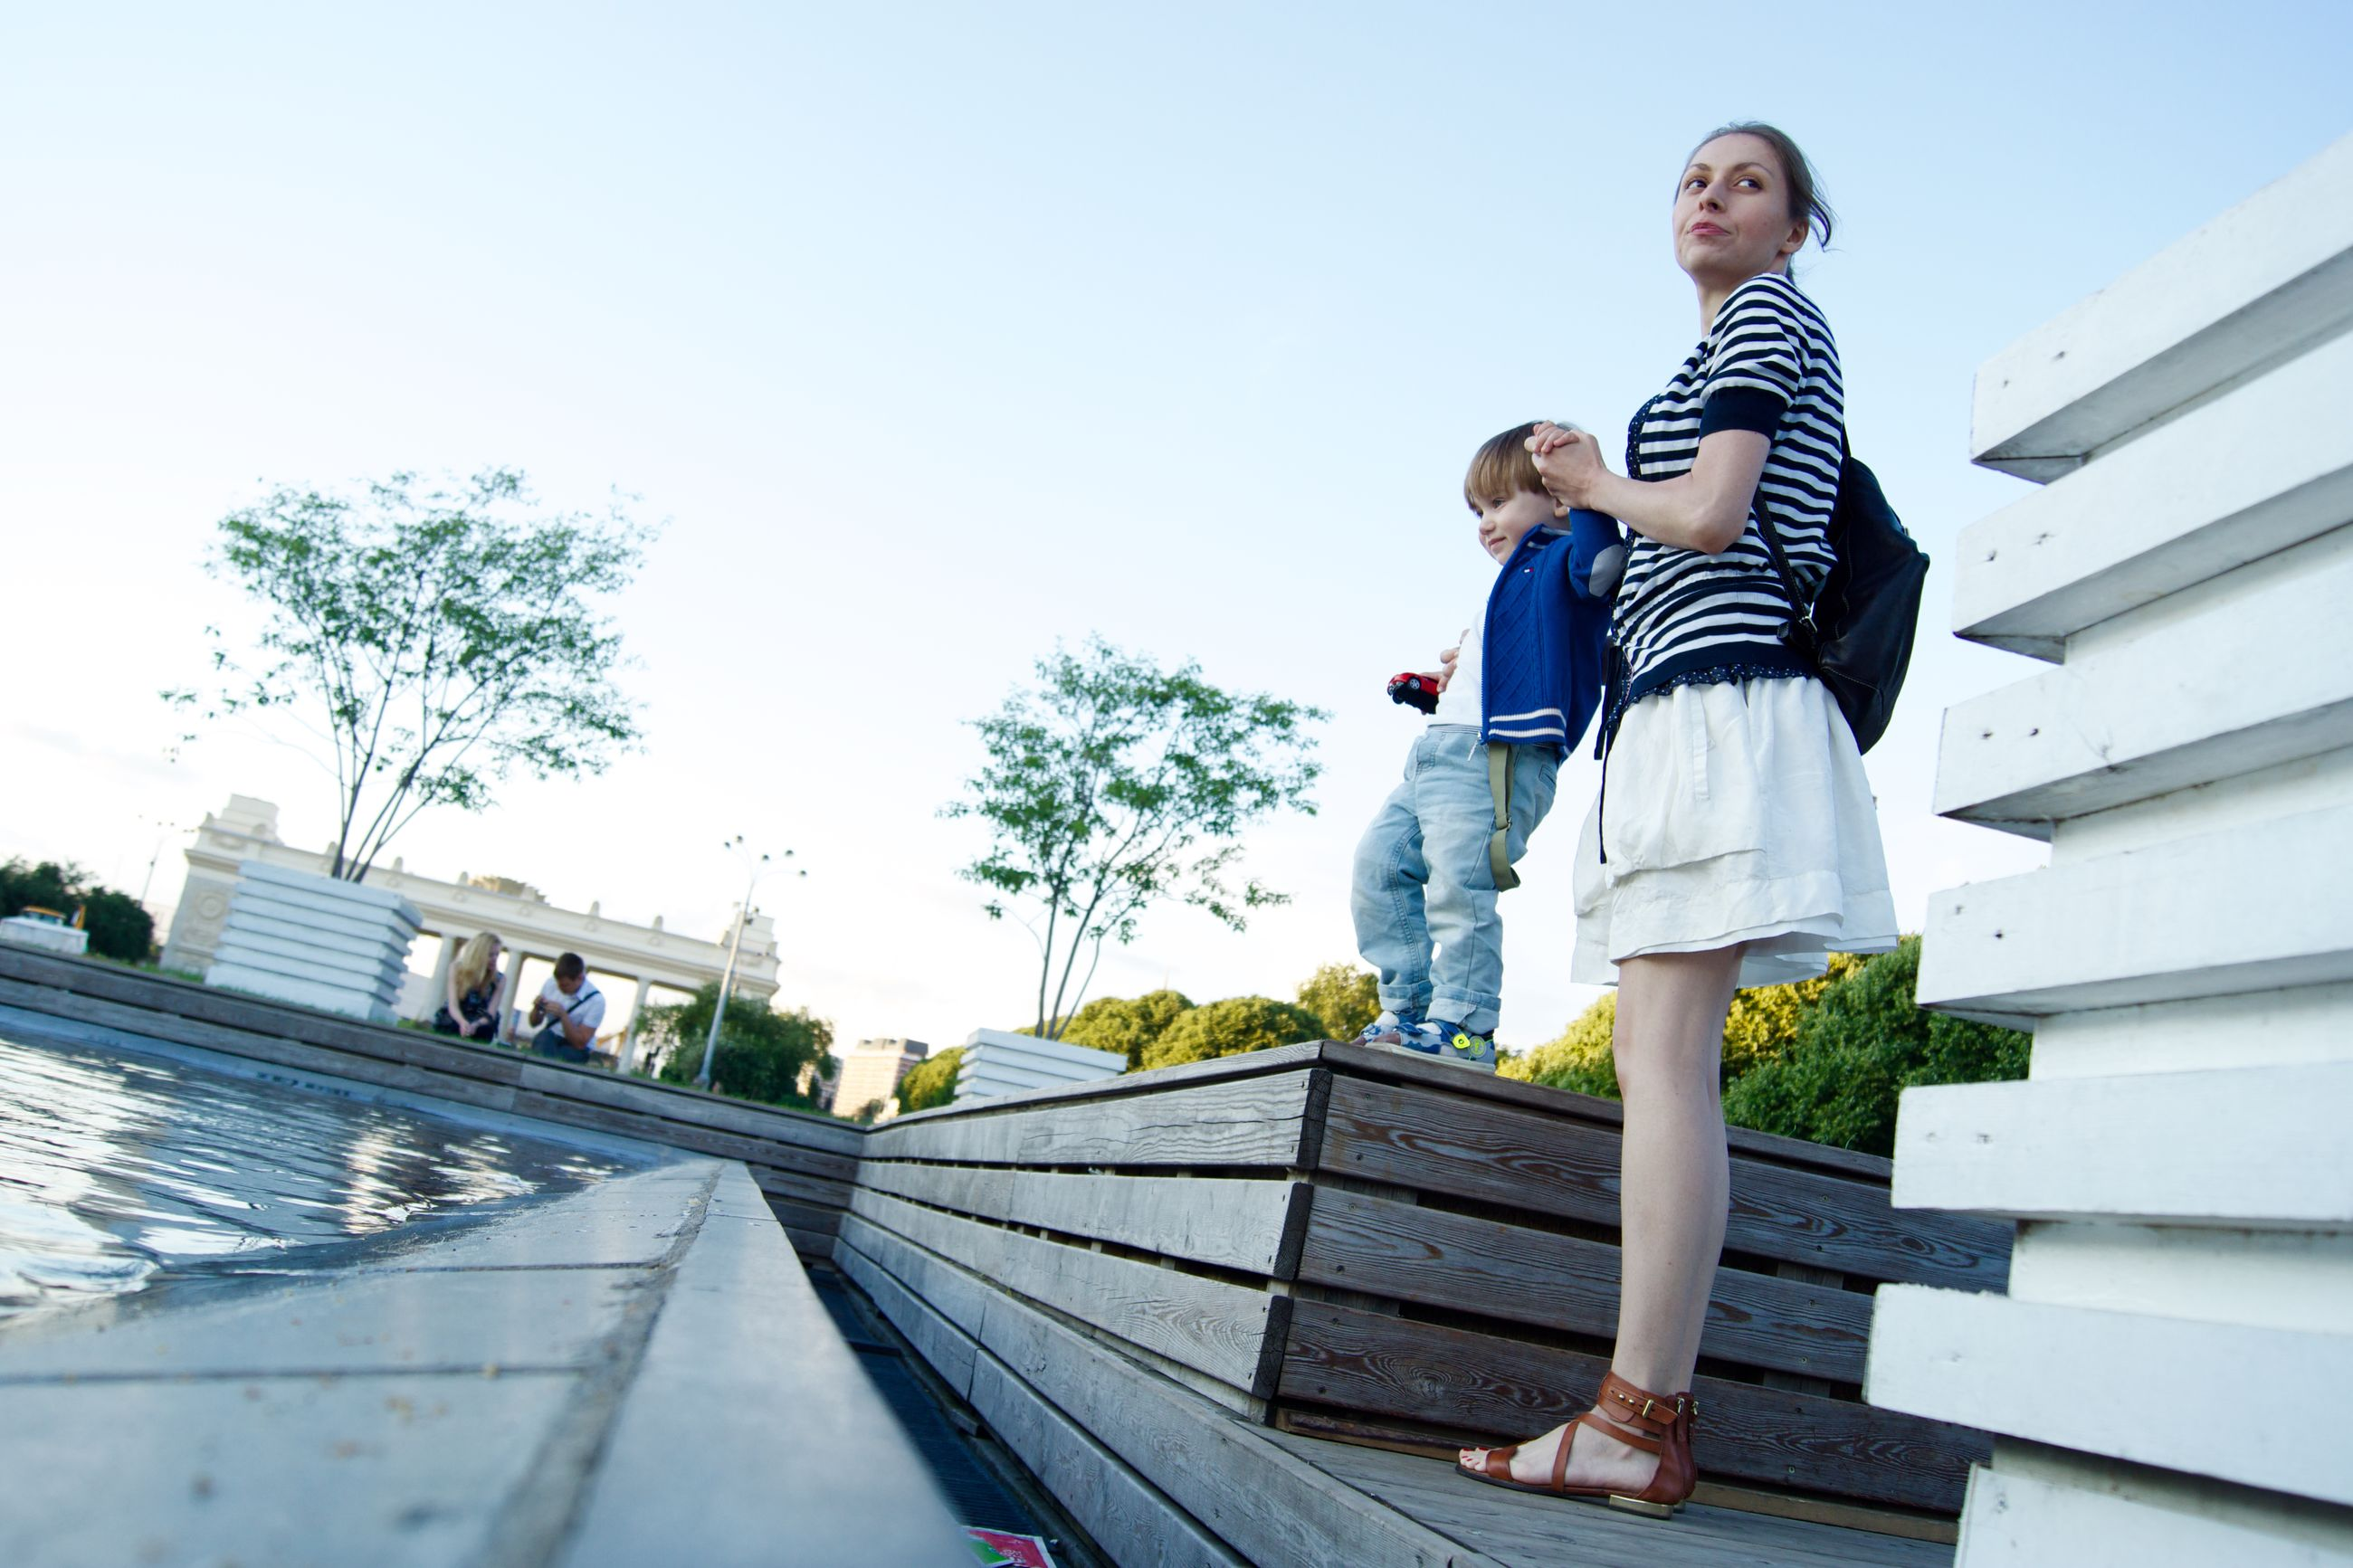 full length, casual clothing, built structure, person, building exterior, lifestyles, young adult, architecture, clear sky, standing, young men, railing, leisure activity, front view, day, copy space, sky, looking at camera